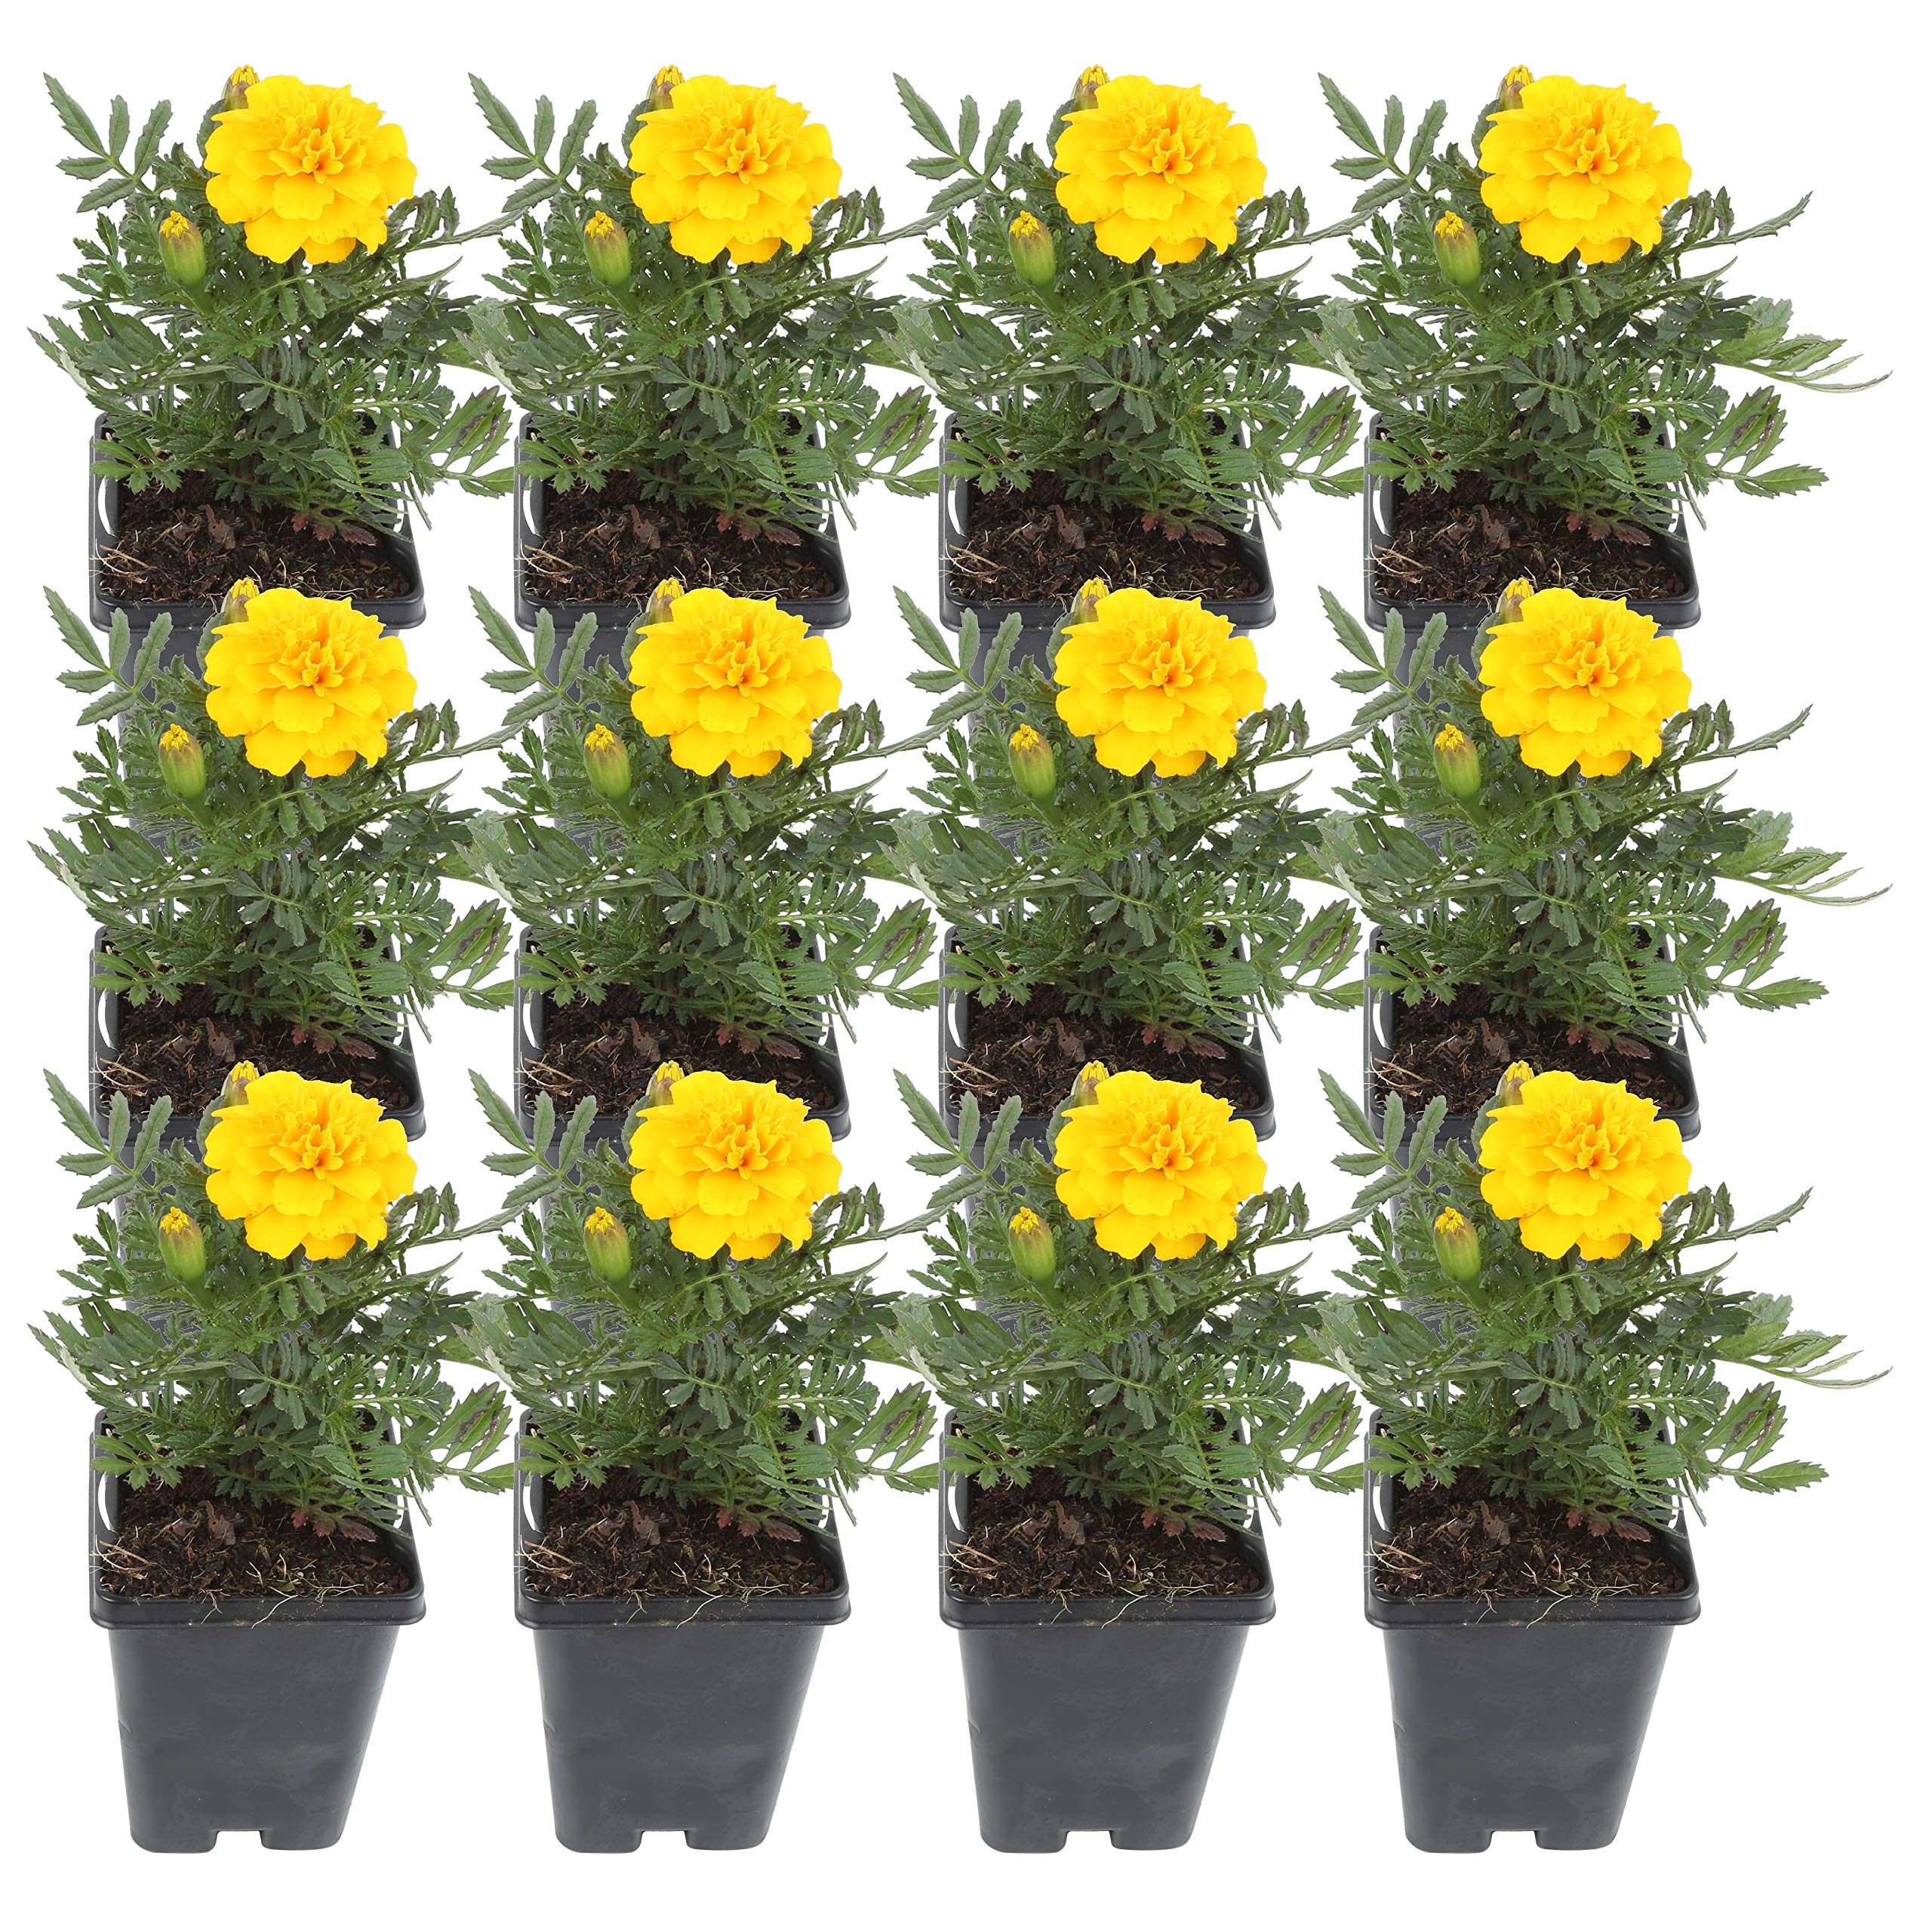 Costa Farms Marigold Live Outdoor Plant 1 PT Grower's Pot, 12-Pack, Yellow